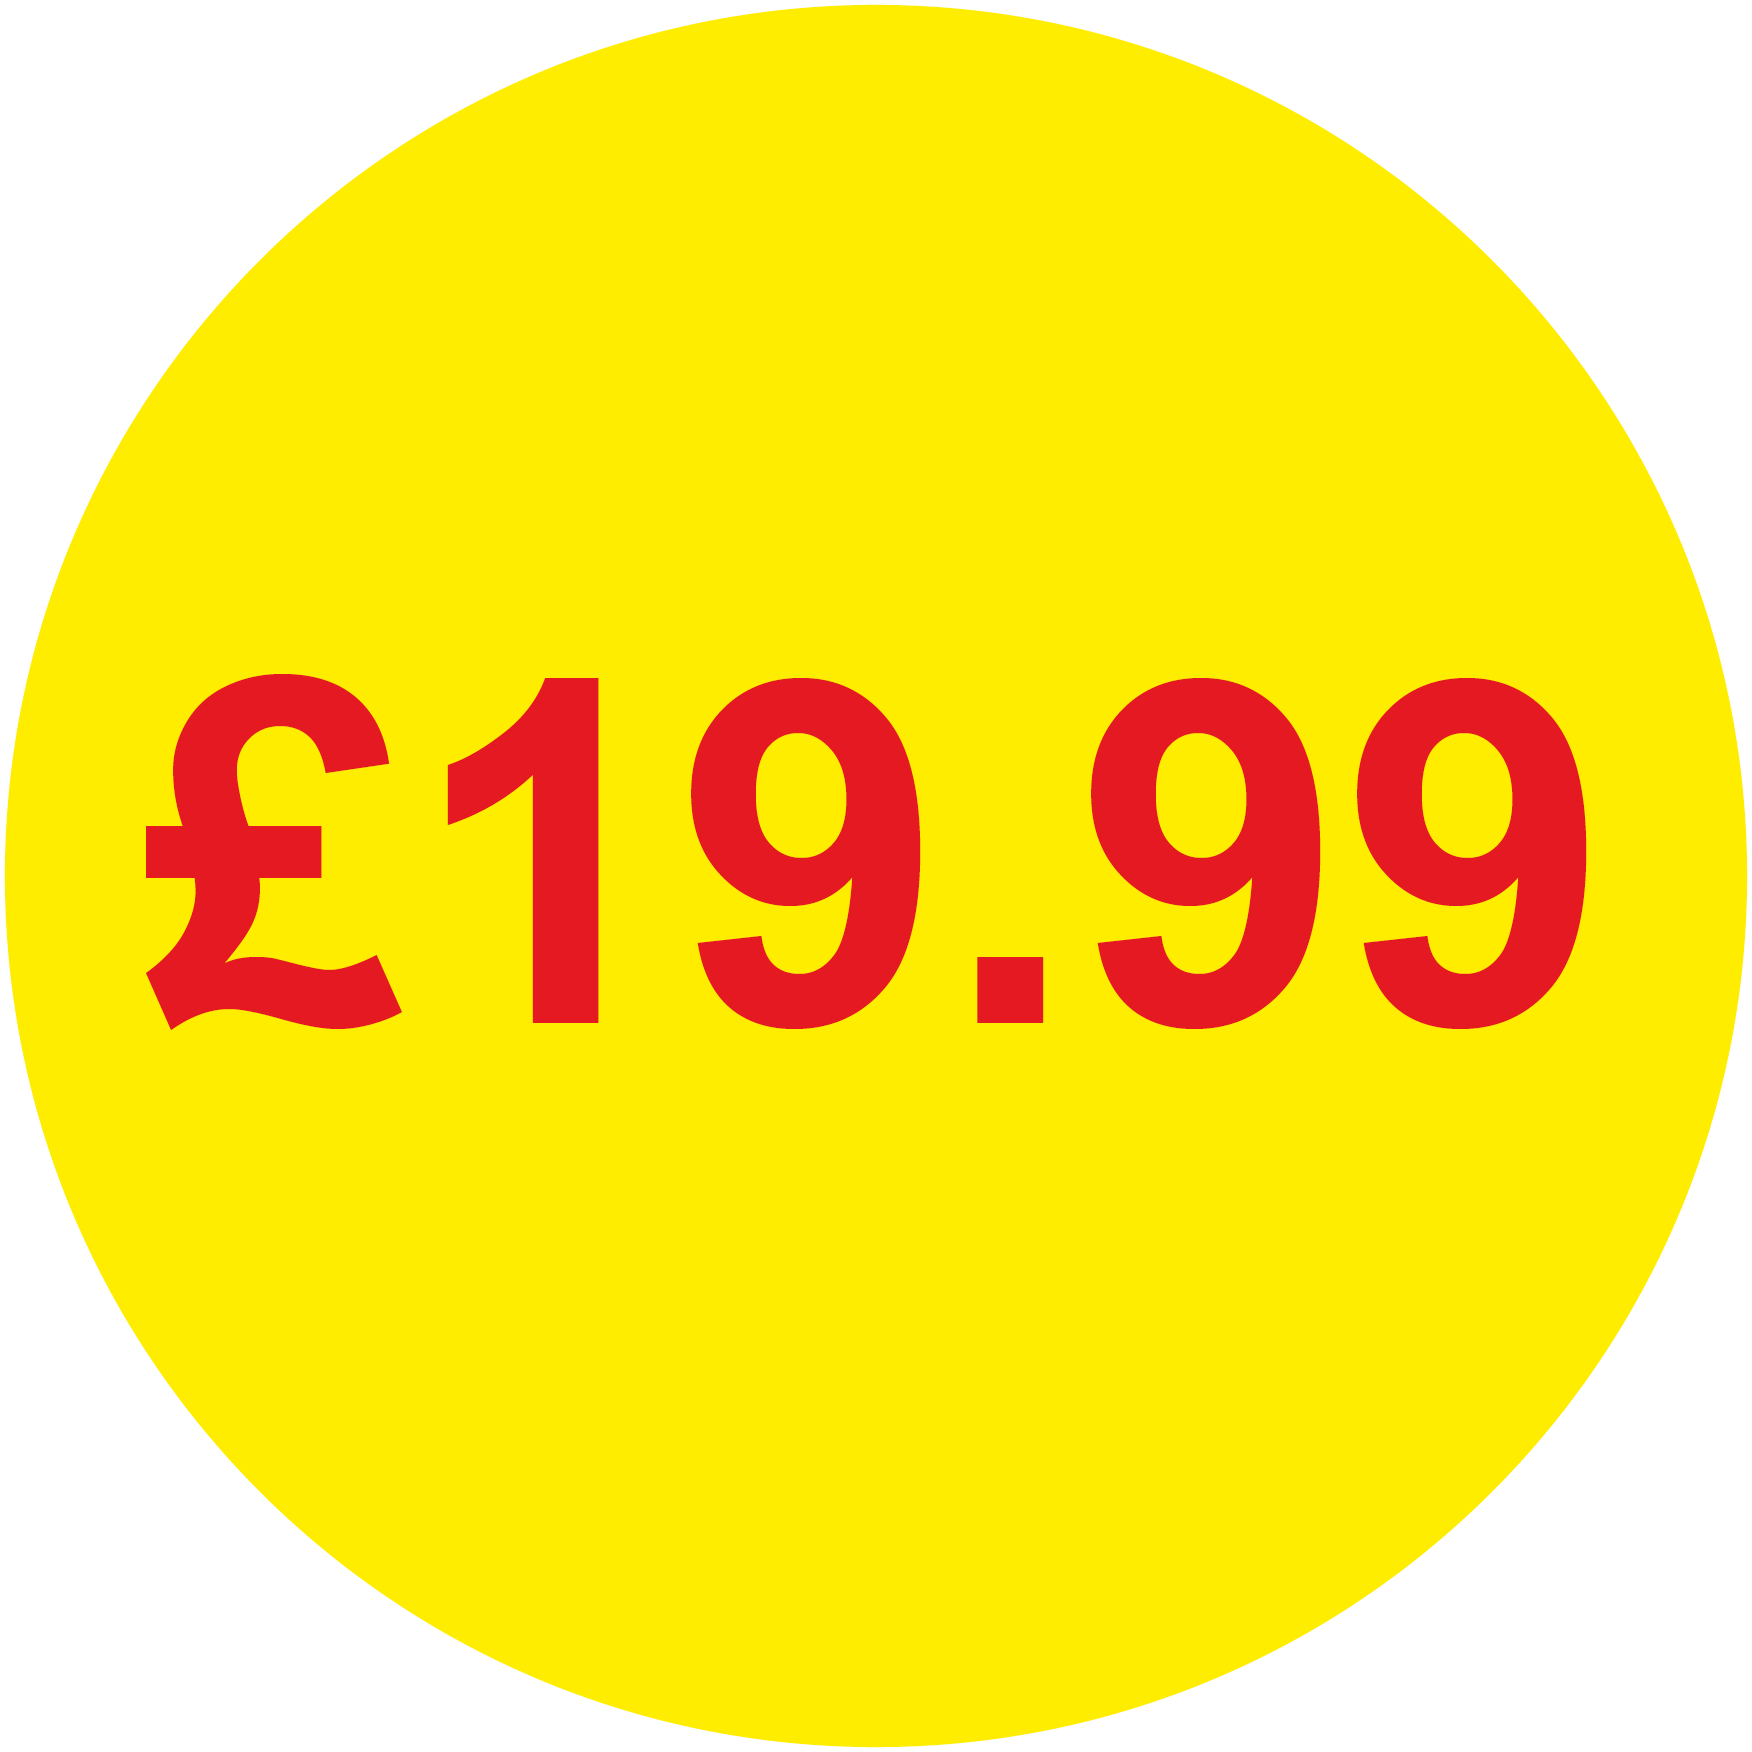 £19.99 Round Price Labels